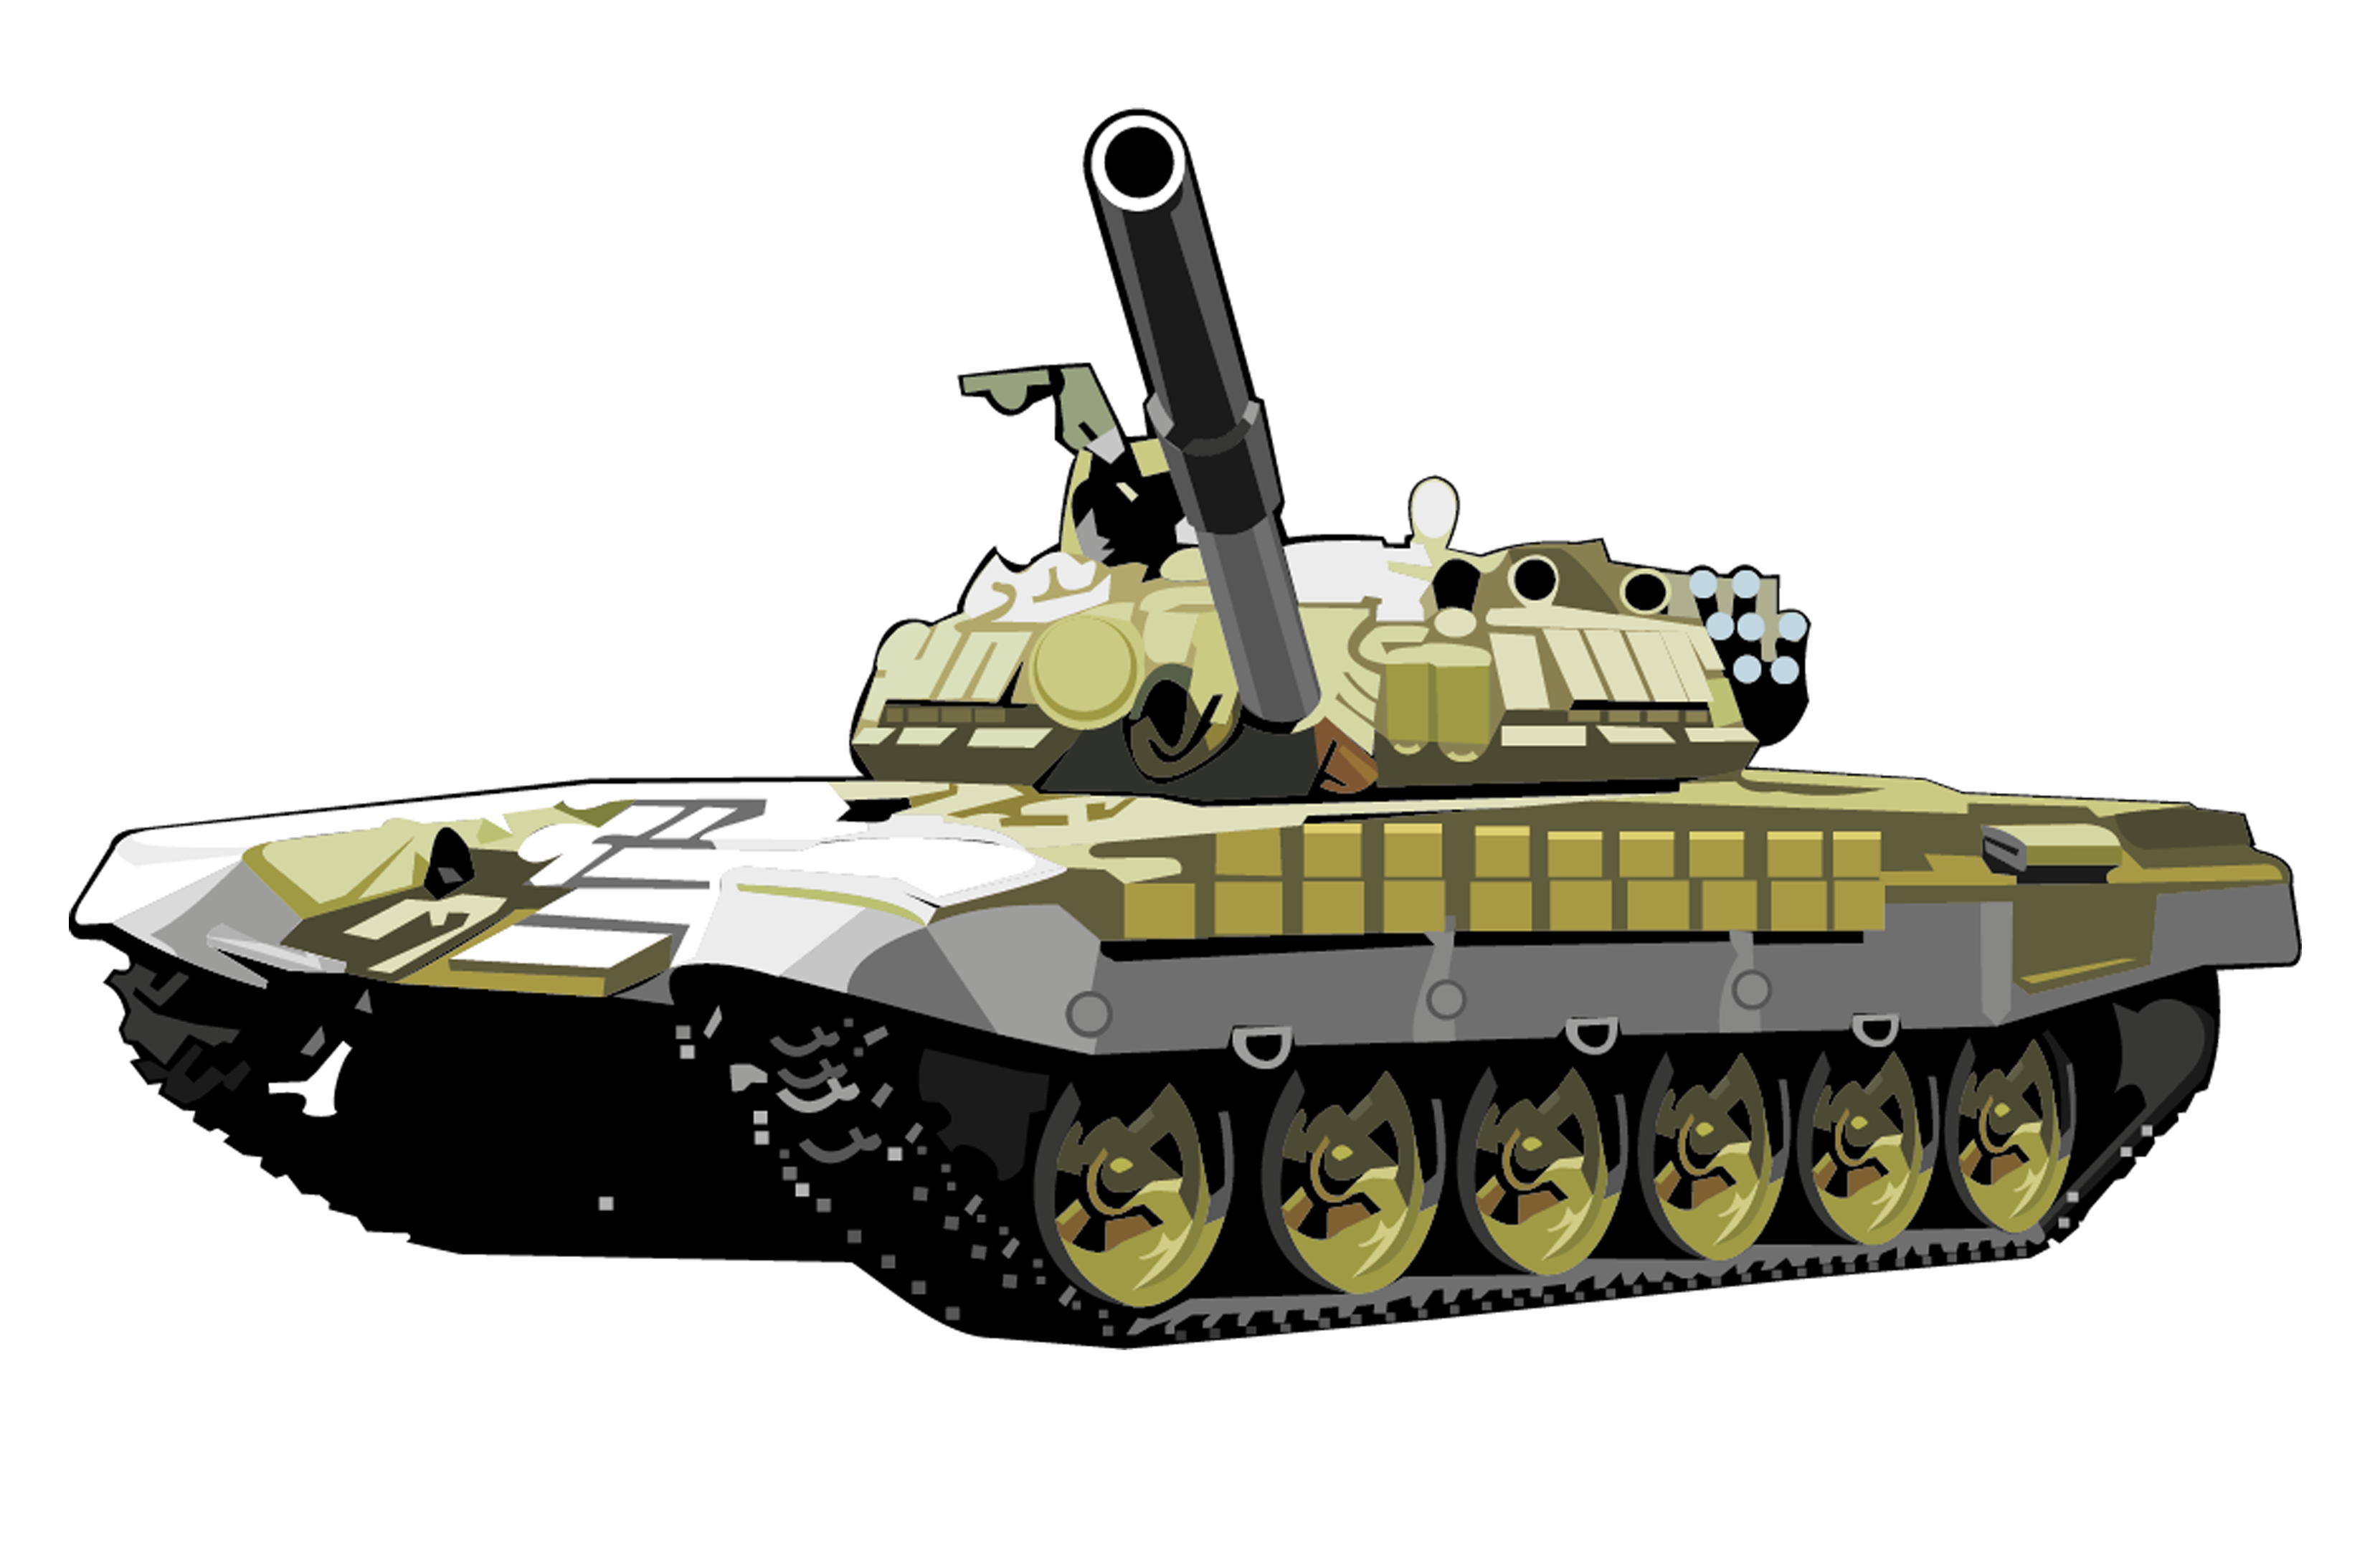 Military Tank Png - T72 Tank Png Image, Armored Tank, Transparent background PNG HD thumbnail